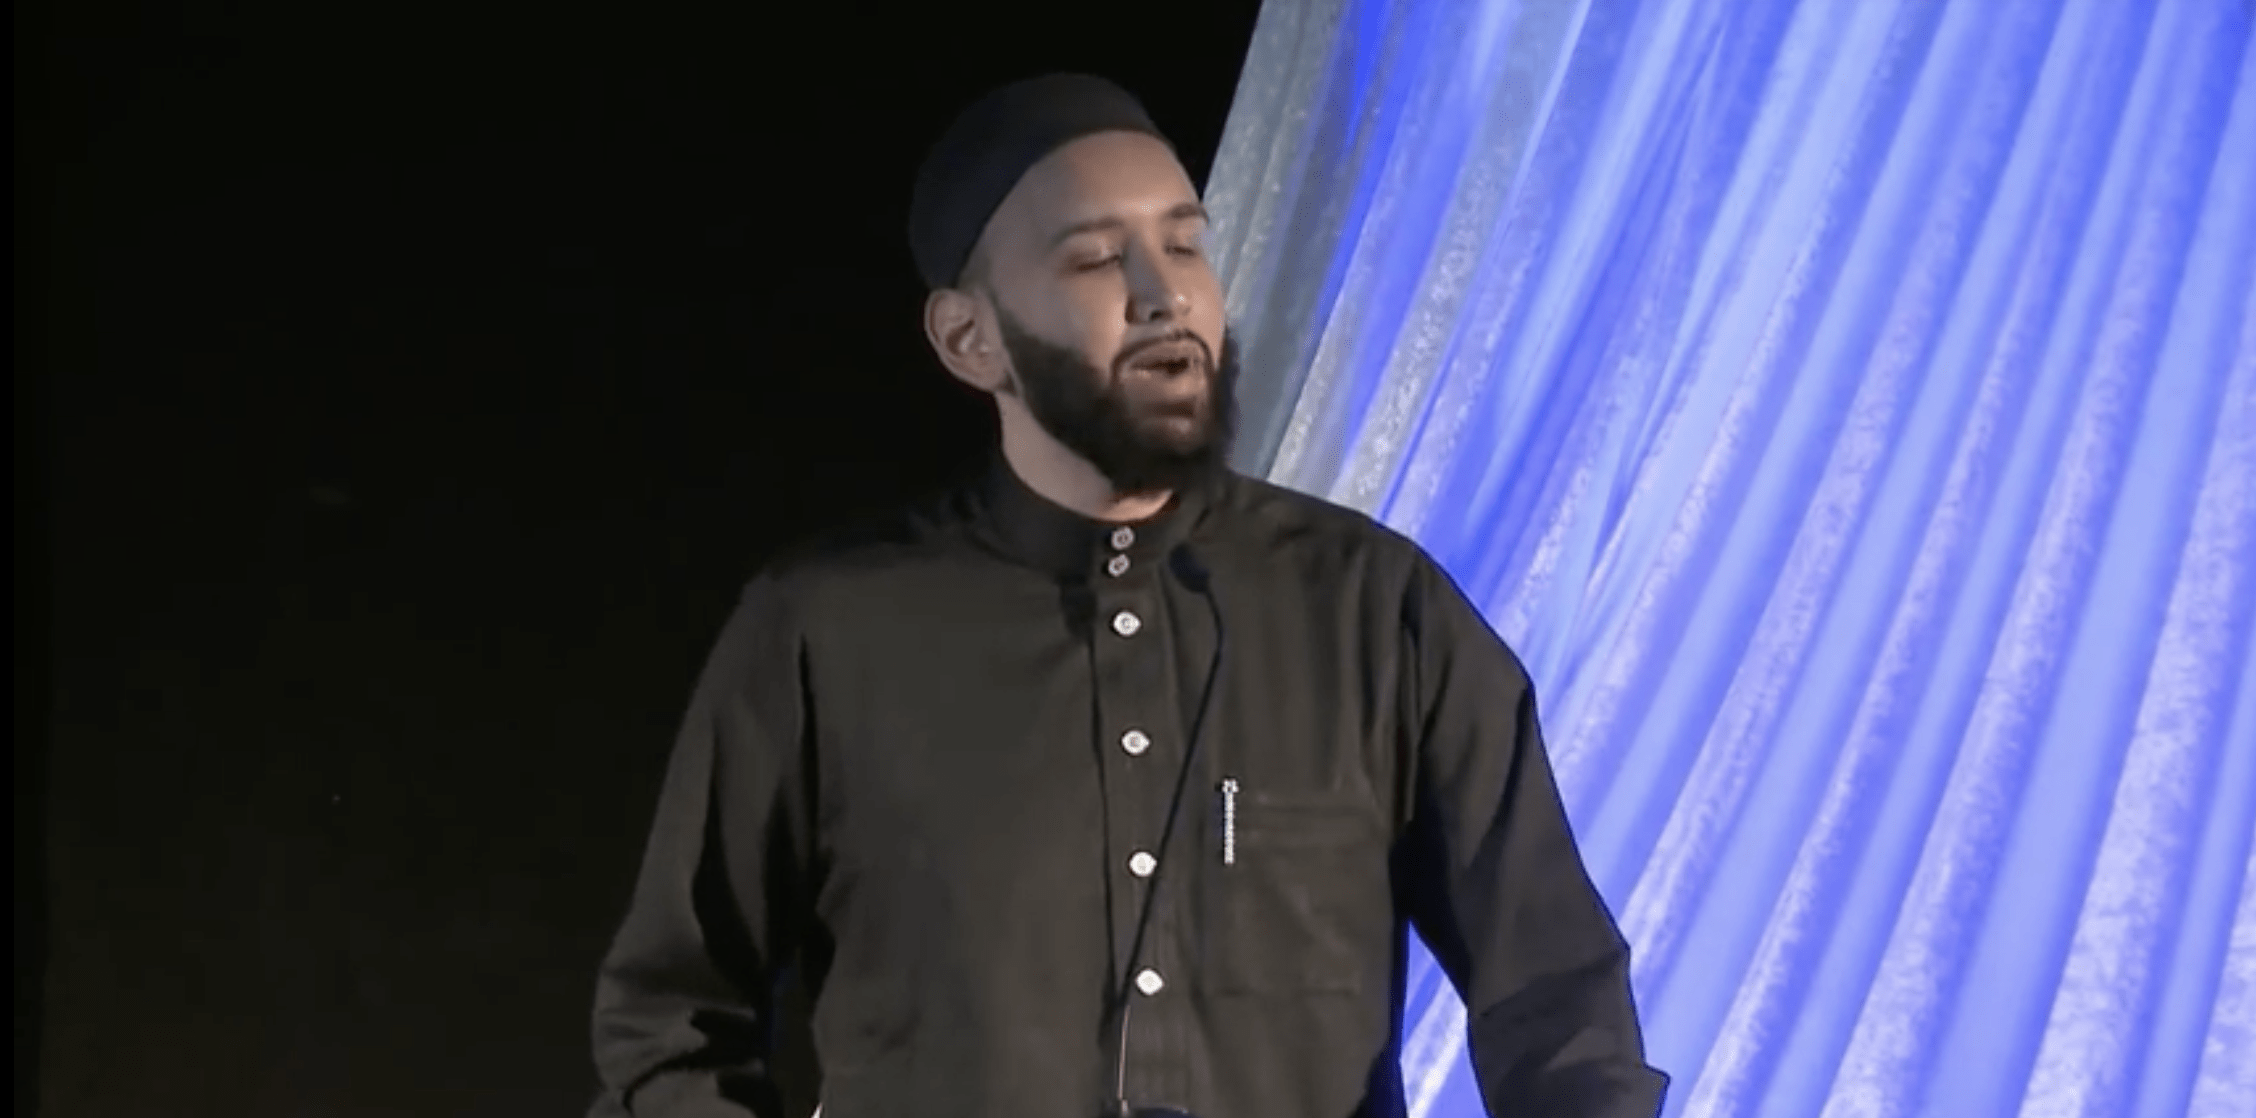 Omar Suleiman – Sweat for Allah